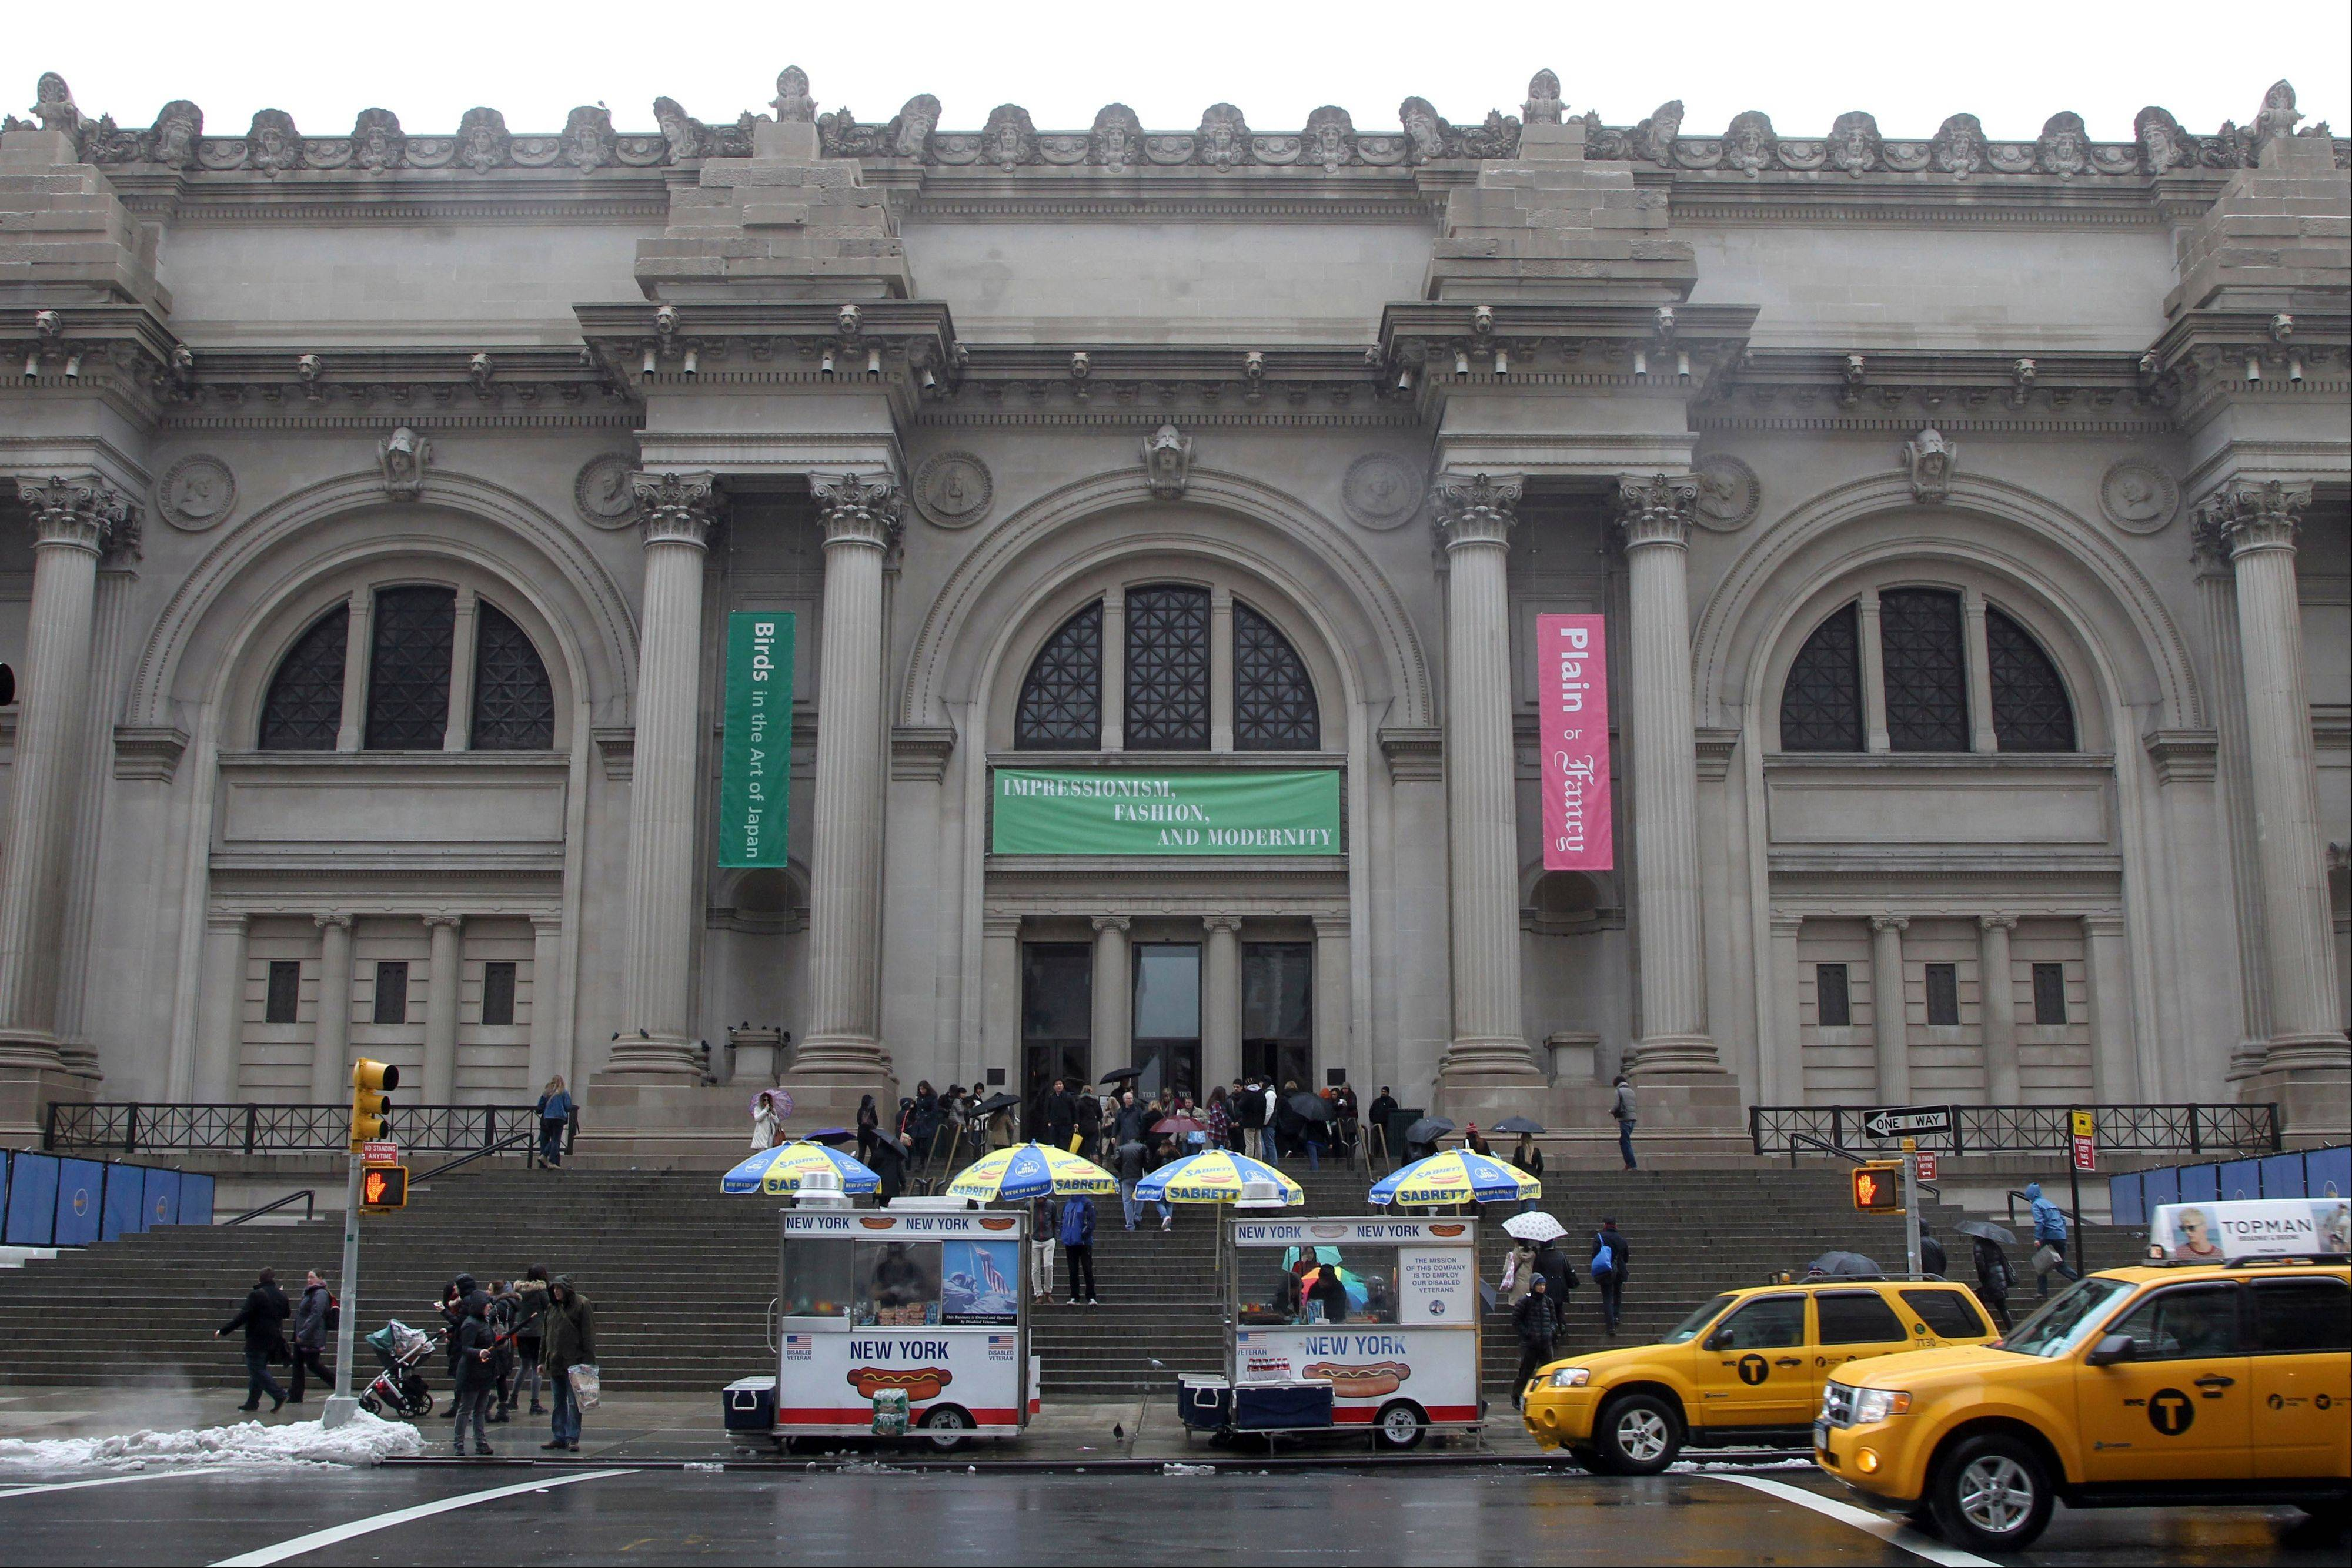 Confusion over what's required to enter one of the Metropolitan Museum of Art in New York, which draws more than 6 million visitors a year, is at the heart of a class-action lawsuit this month accusing the Met of scheming to defraud the public into believing the entrance fees are required.